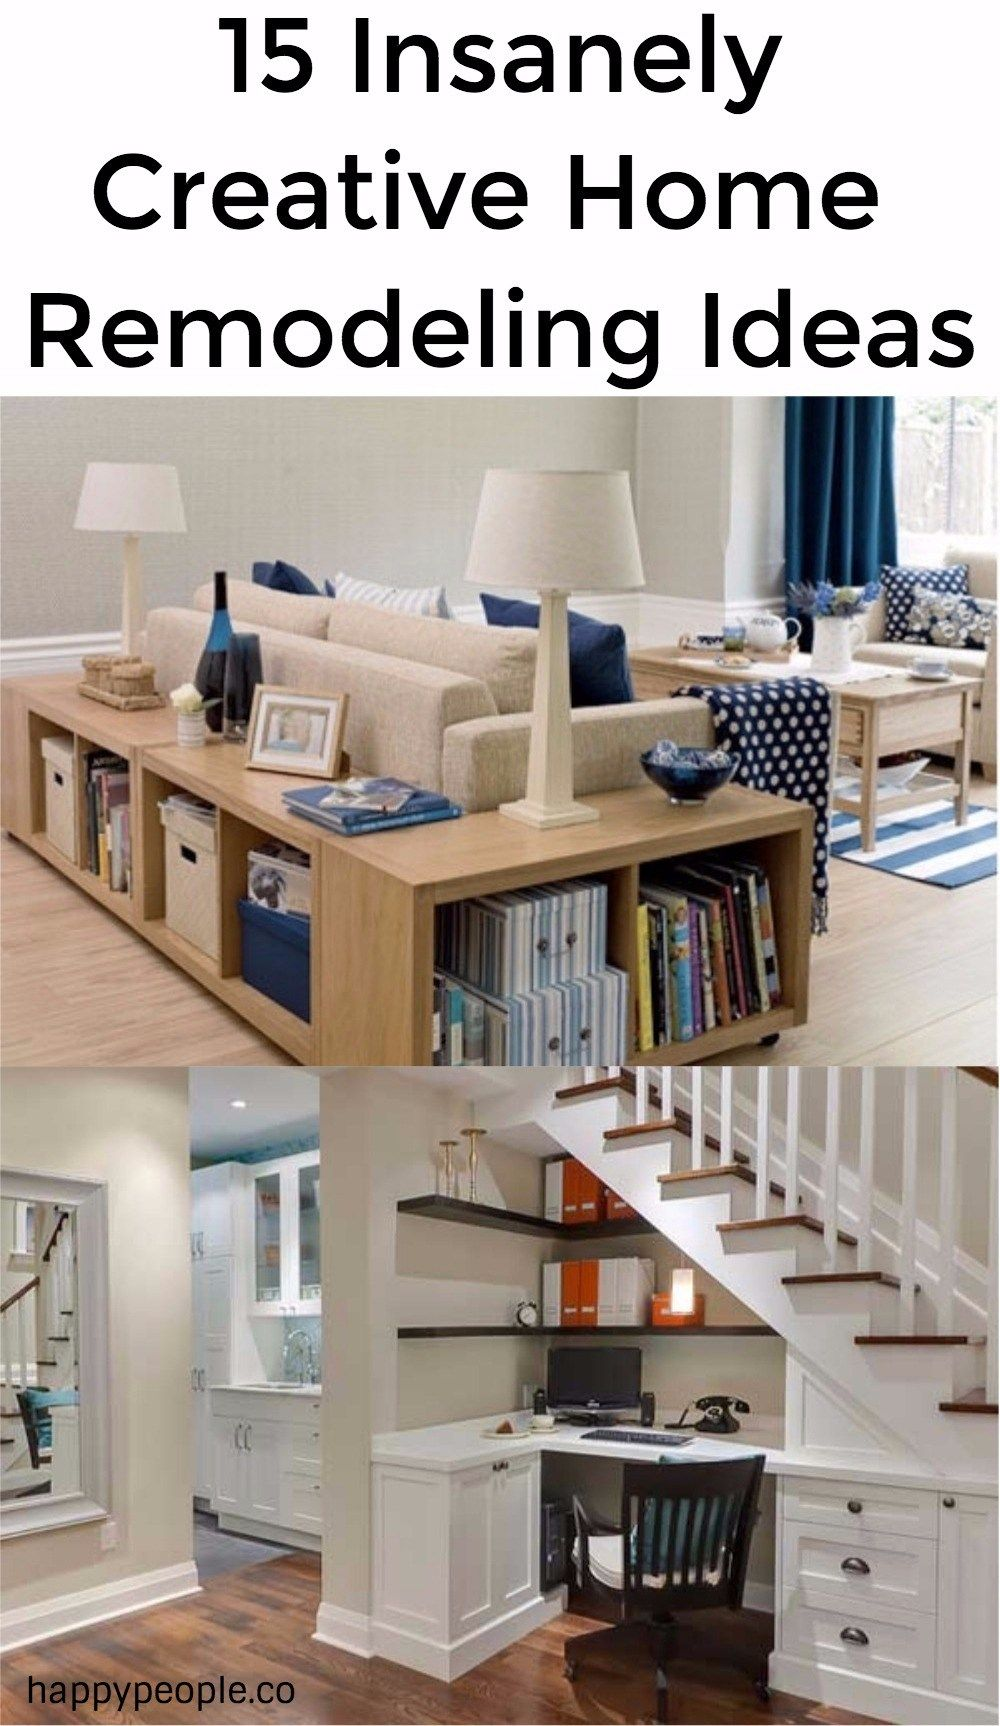 Do Not Miss These 15 Insanely Creative Home Remodeling Ideas | Home Creative Home Renovations Designs on creative home decor, creative home architecture, creative home upgrades, creative cabinets, creative decks, creative home storage, creative home furnishings, creative home framing, creative decorating, creative home porches,